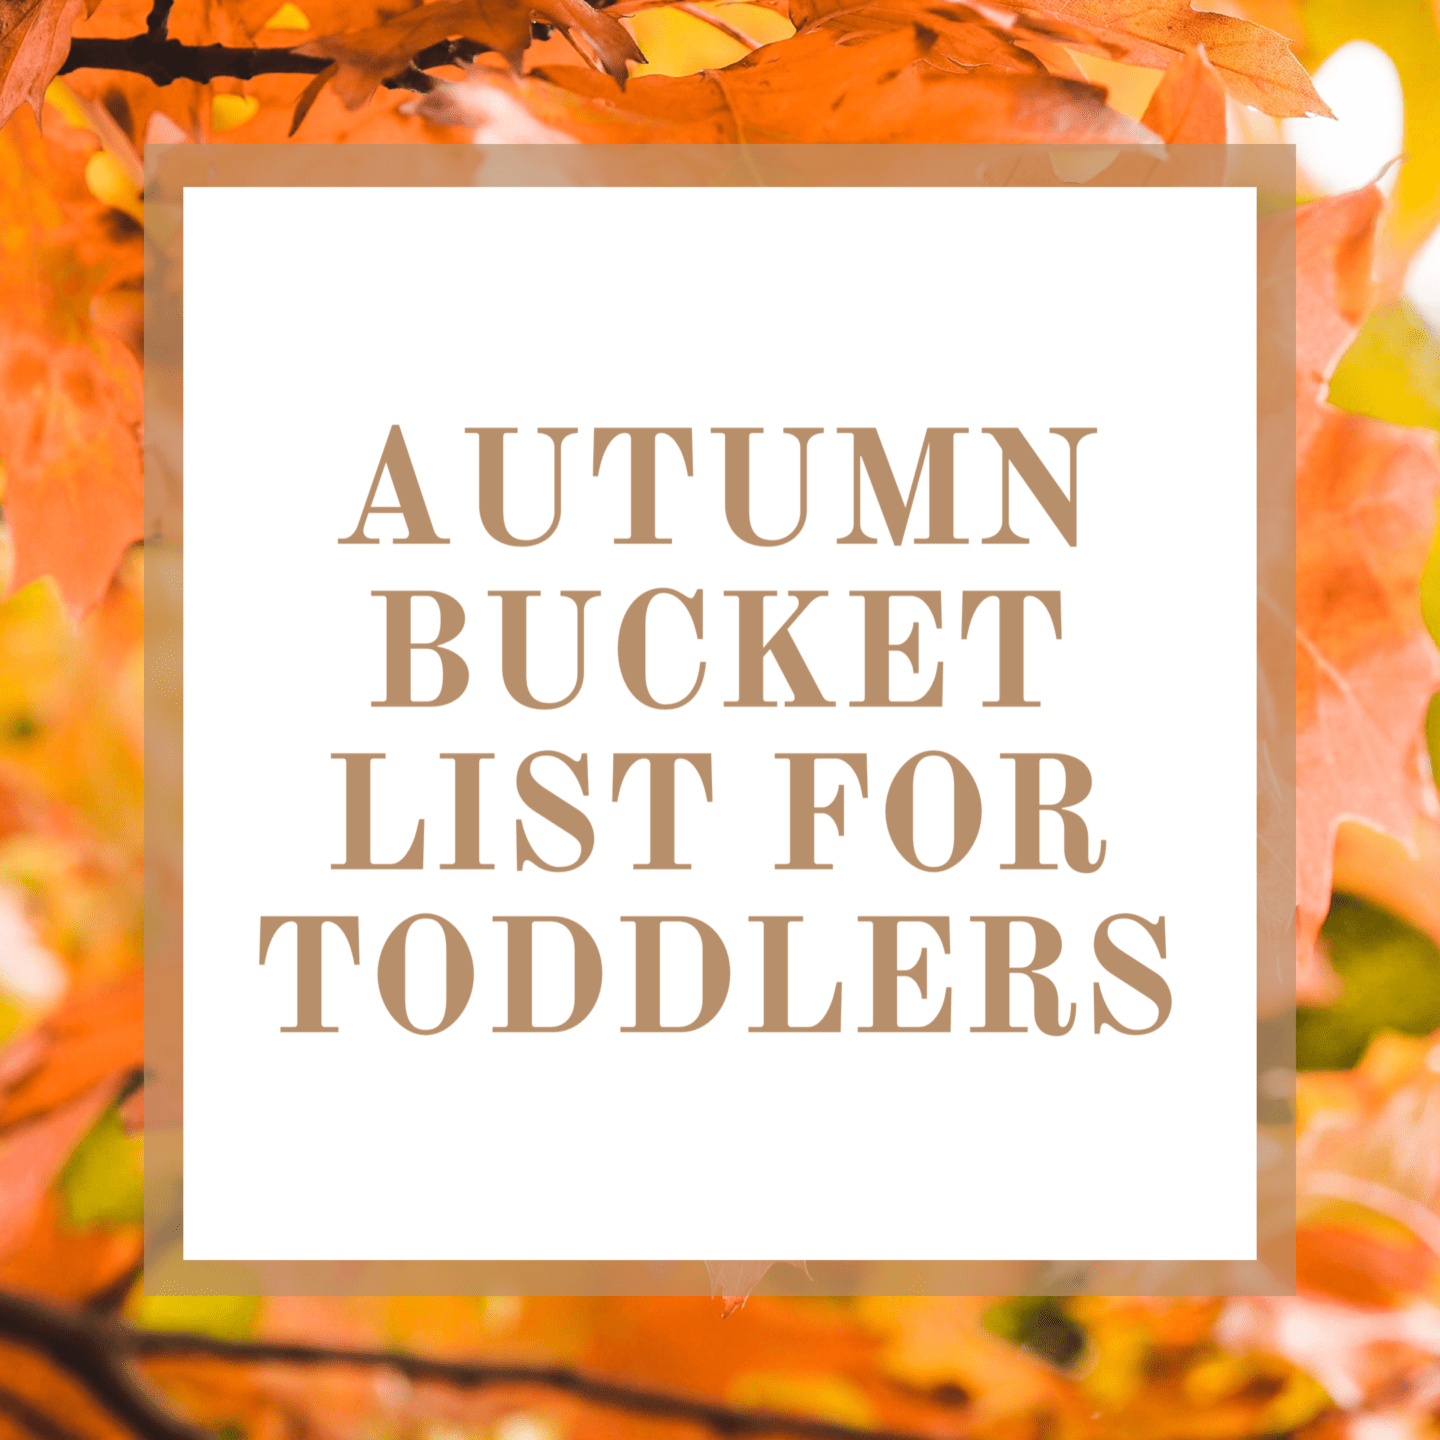 Autumn Bucket List For Toddlers | Are you looking for some fun activities this Autumn for your toddler? Find out what is on our Autumn Bucket List for Toddlers